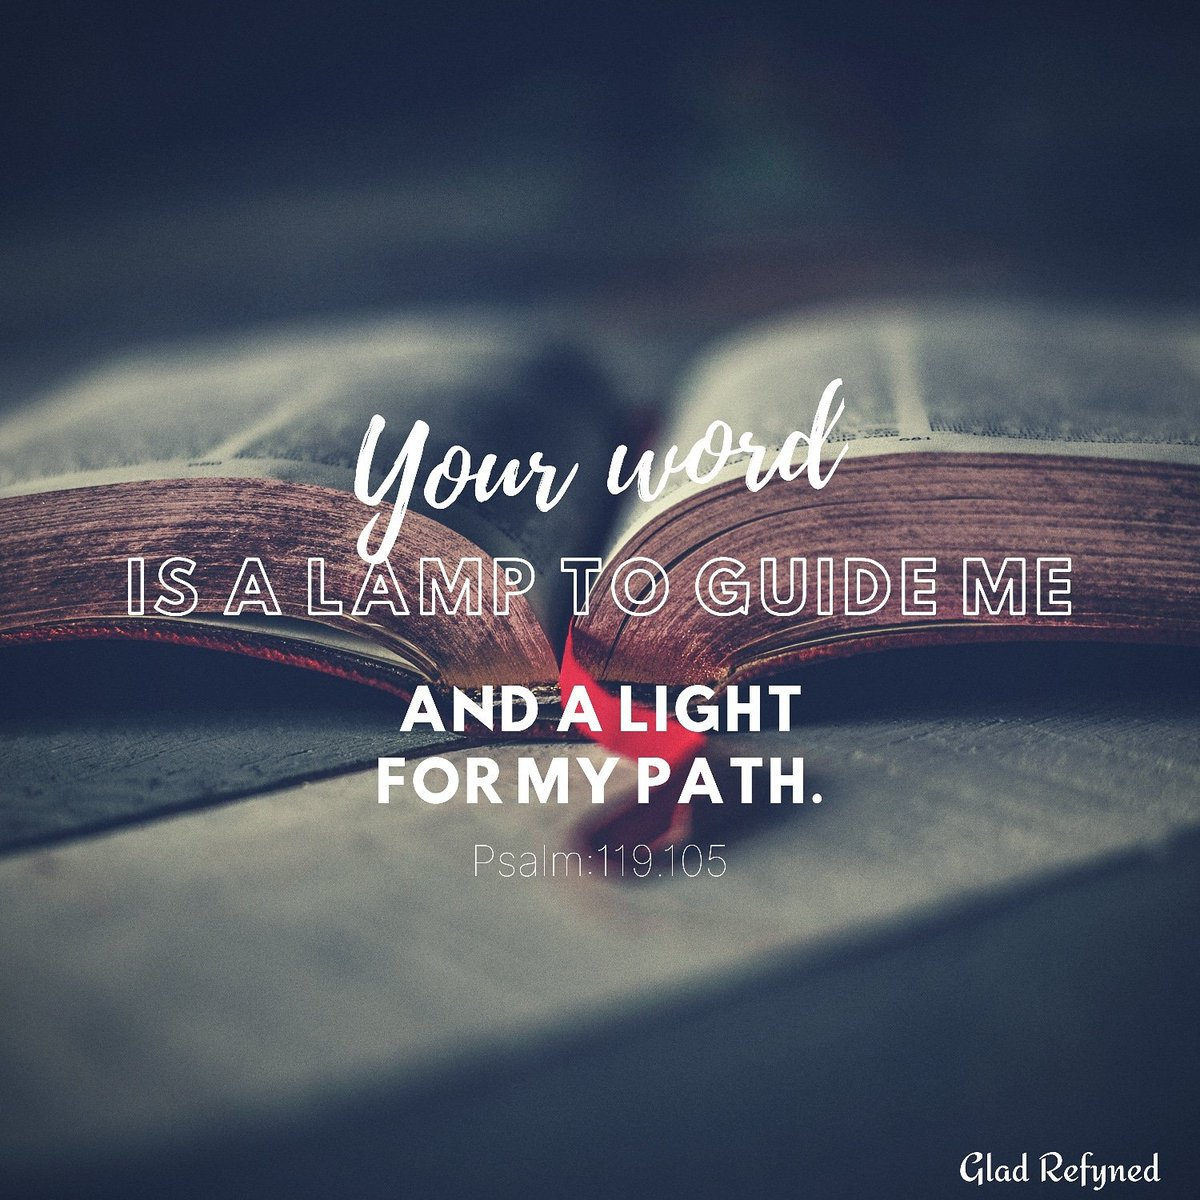 Psalm:119.105  Your word is a lamp to guide me and a light for my path.  #word #lamp #light #path #bibleverse #lifequotesandsayings #gladrefyned<br>http://pic.twitter.com/qa5tYFu98E